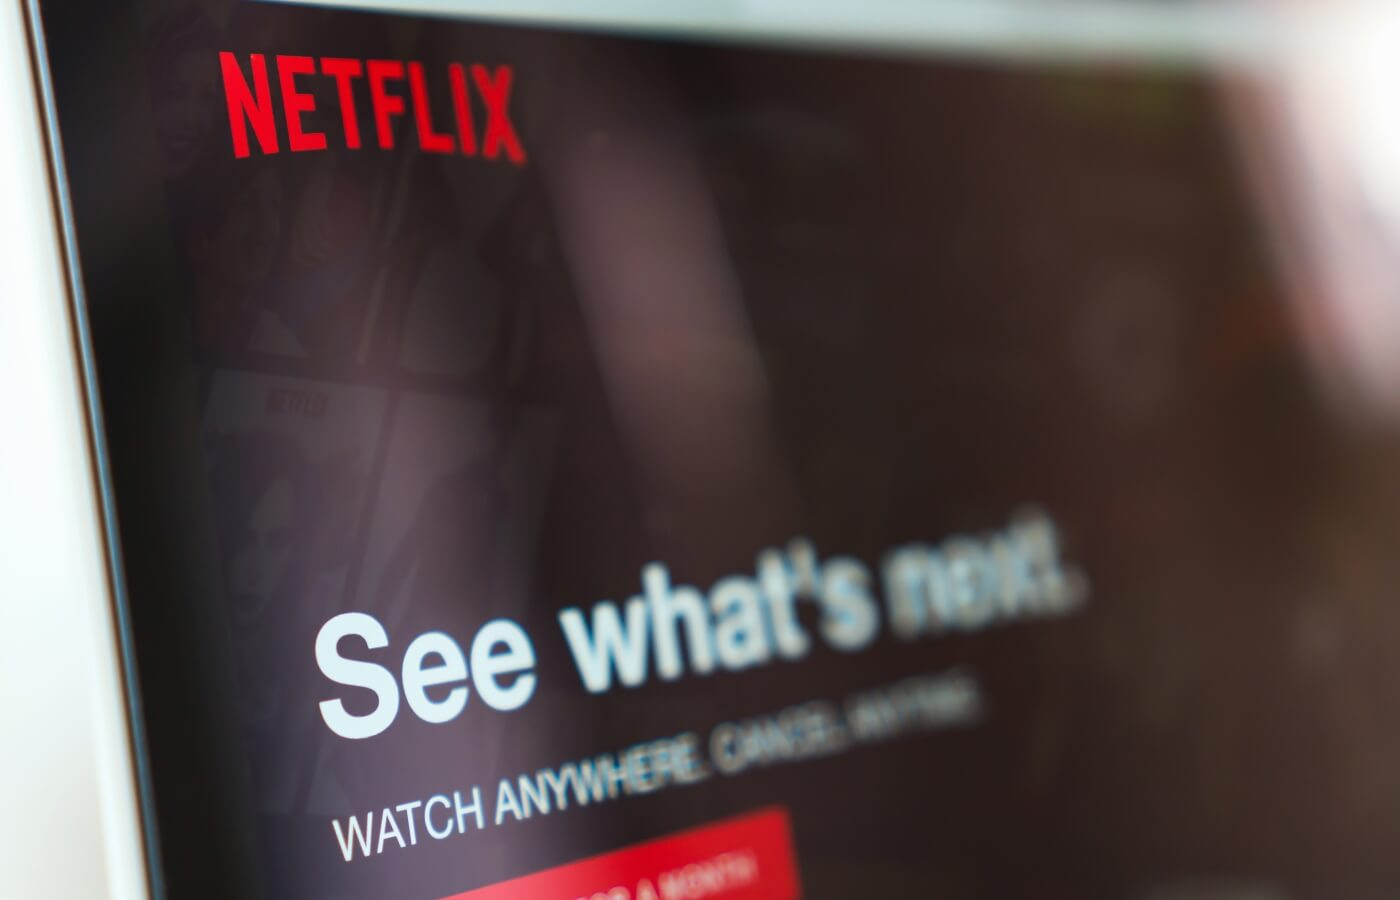 Netflix launches top 10 feature to show what people are really watching